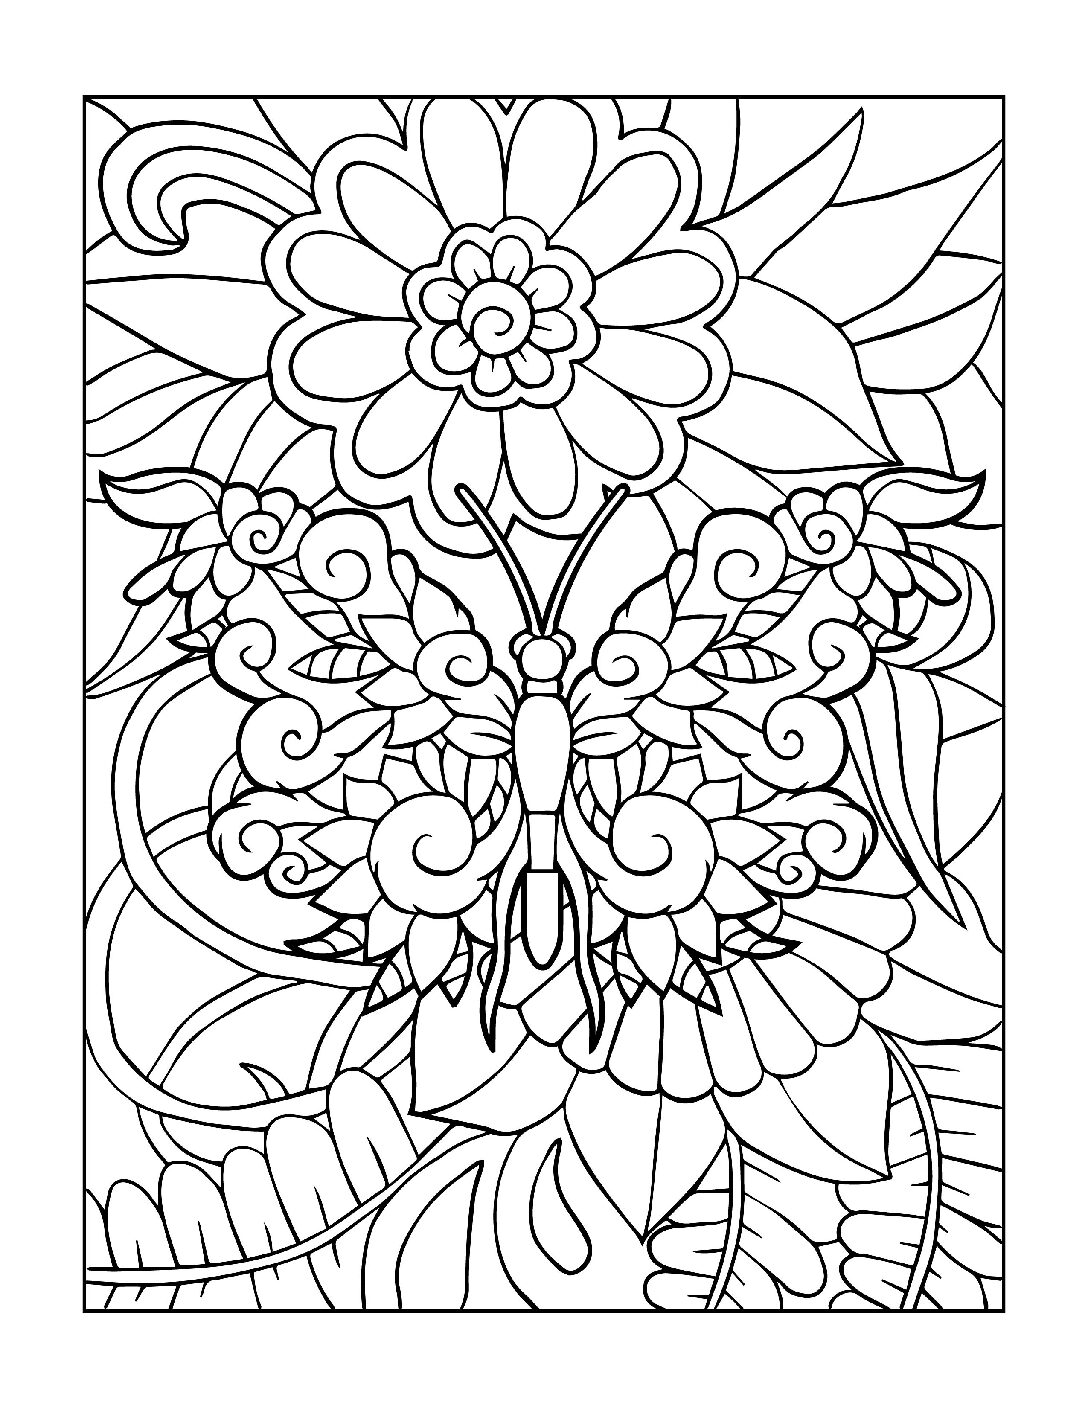 Coloring-Pages_Butterflies-2-01-1-pdf Free Printable Butterfly Colouring Pages